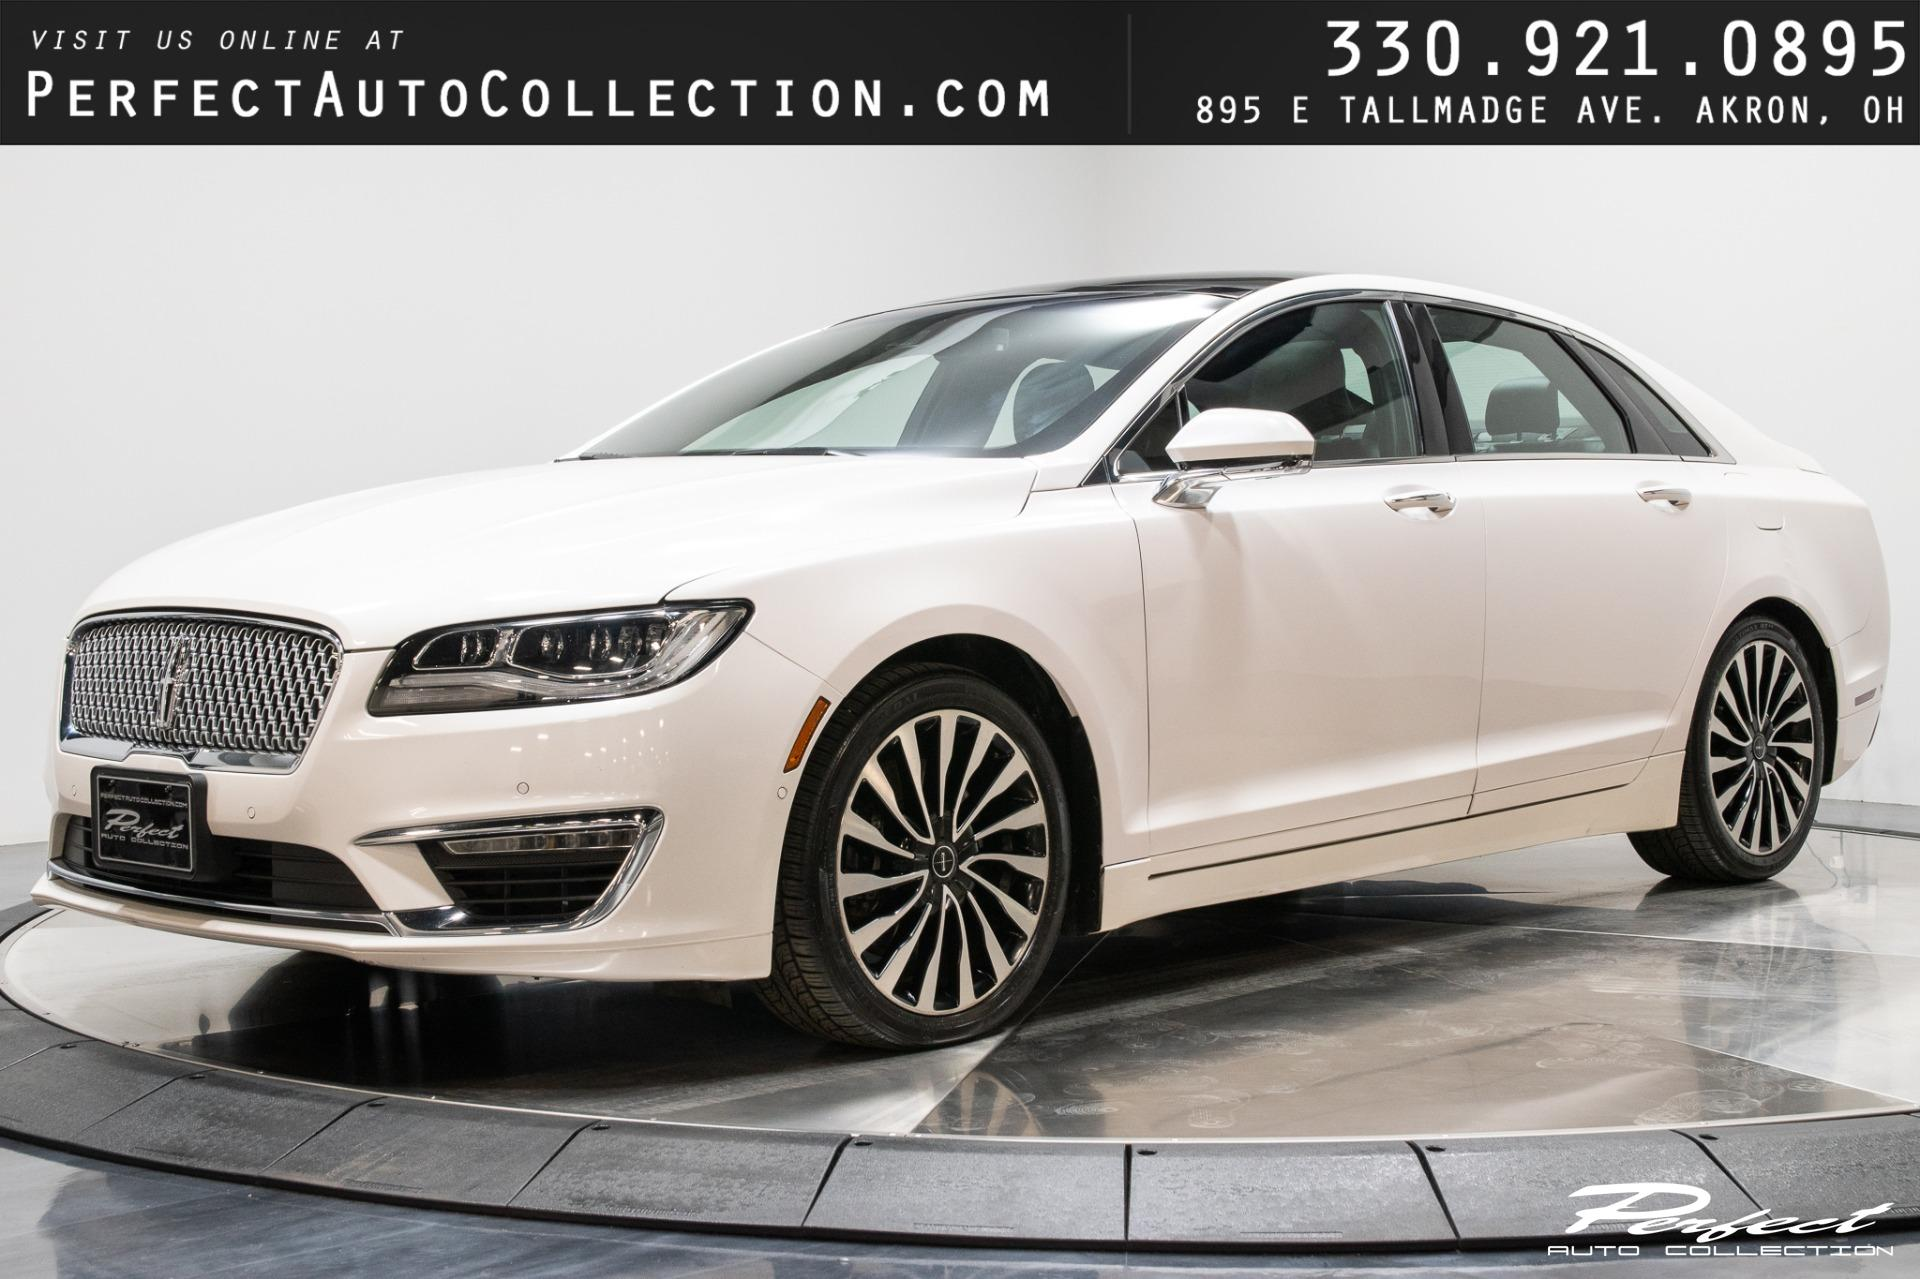 Used 2017 Lincoln MKZ Black Label for sale $26,293 at Perfect Auto Collection in Akron OH 44310 1